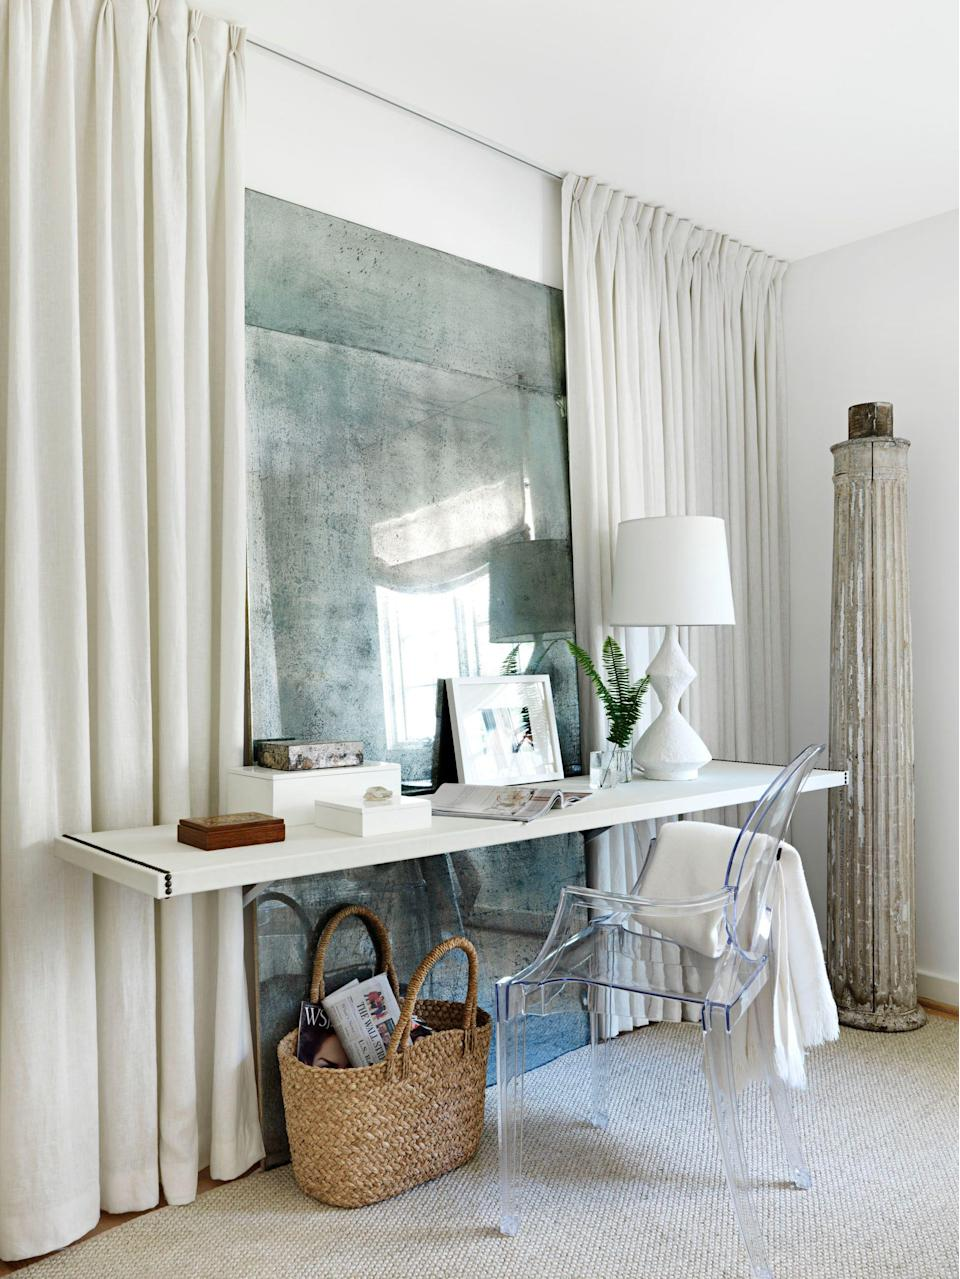 """<p>Controversial opinion, perhaps, but someone needs to break it to Virginia Woolf: You <a href=""""https://www.housebeautiful.com/room-decorating/home-library-office/g36317886/small-office-ideas/"""" rel=""""nofollow noopener"""" target=""""_blank"""" data-ylk=""""slk:don't need a room"""" class=""""link rapid-noclick-resp"""">don't need a room</a> of one's own to achieve work-from-home success; you just need a <a href=""""https://www.housebeautiful.com/shopping/furniture/g27356139/best-desks-for-small-spaces/"""" rel=""""nofollow noopener"""" target=""""_blank"""" data-ylk=""""slk:desk"""" class=""""link rapid-noclick-resp"""">desk</a>. And while we'd all love to enjoy the spacial luxury she did, even those with a spare room for studying, emailing, taking meetings, getting creative, or strategizing know that the real key to productivity is having a surface space to work on (i.e. a desk). If you have to make do with working in an unused bedroom or living room corner—or you're trying to figure out how to make your eat-in kitchen or dining room moonlight as an <a href=""""https://www.housebeautiful.com/room-decorating/home-library-office/g35715761/modern-home-offices/"""" rel=""""nofollow noopener"""" target=""""_blank"""" data-ylk=""""slk:office"""" class=""""link rapid-noclick-resp"""">office</a>—you're in luck. We scoured the best designer portfolios to come up with 15 DIY desk and home office ideas that will allow you to turn any room into an ace workspace. From clever repurposing ideas to easy DIY tips, the makeshift desks ahead get the job done.</p>"""